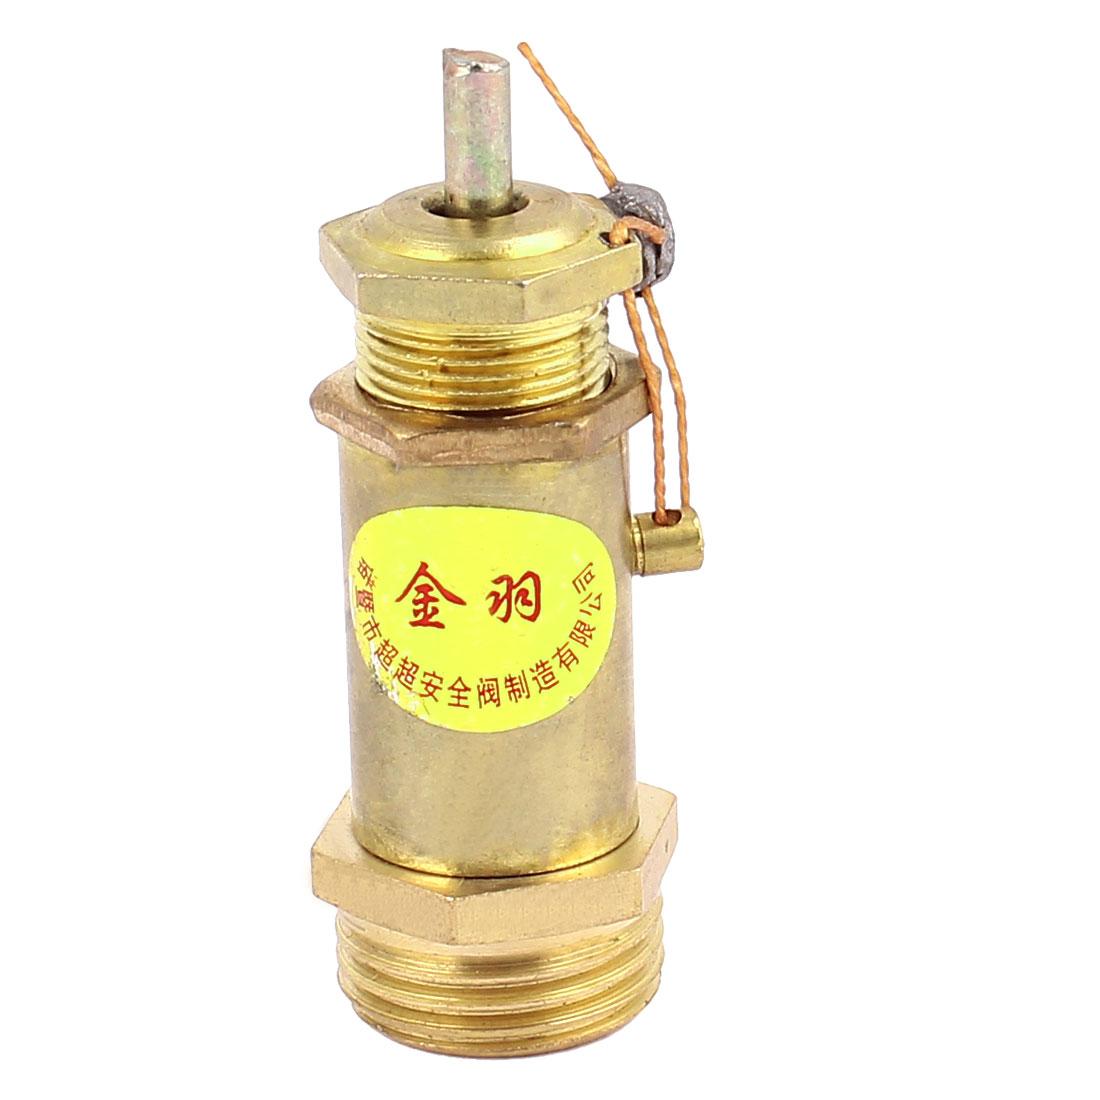 Metal 1/2BSP Male Thread Pneumatic Air Compressor Safety Relief Valve